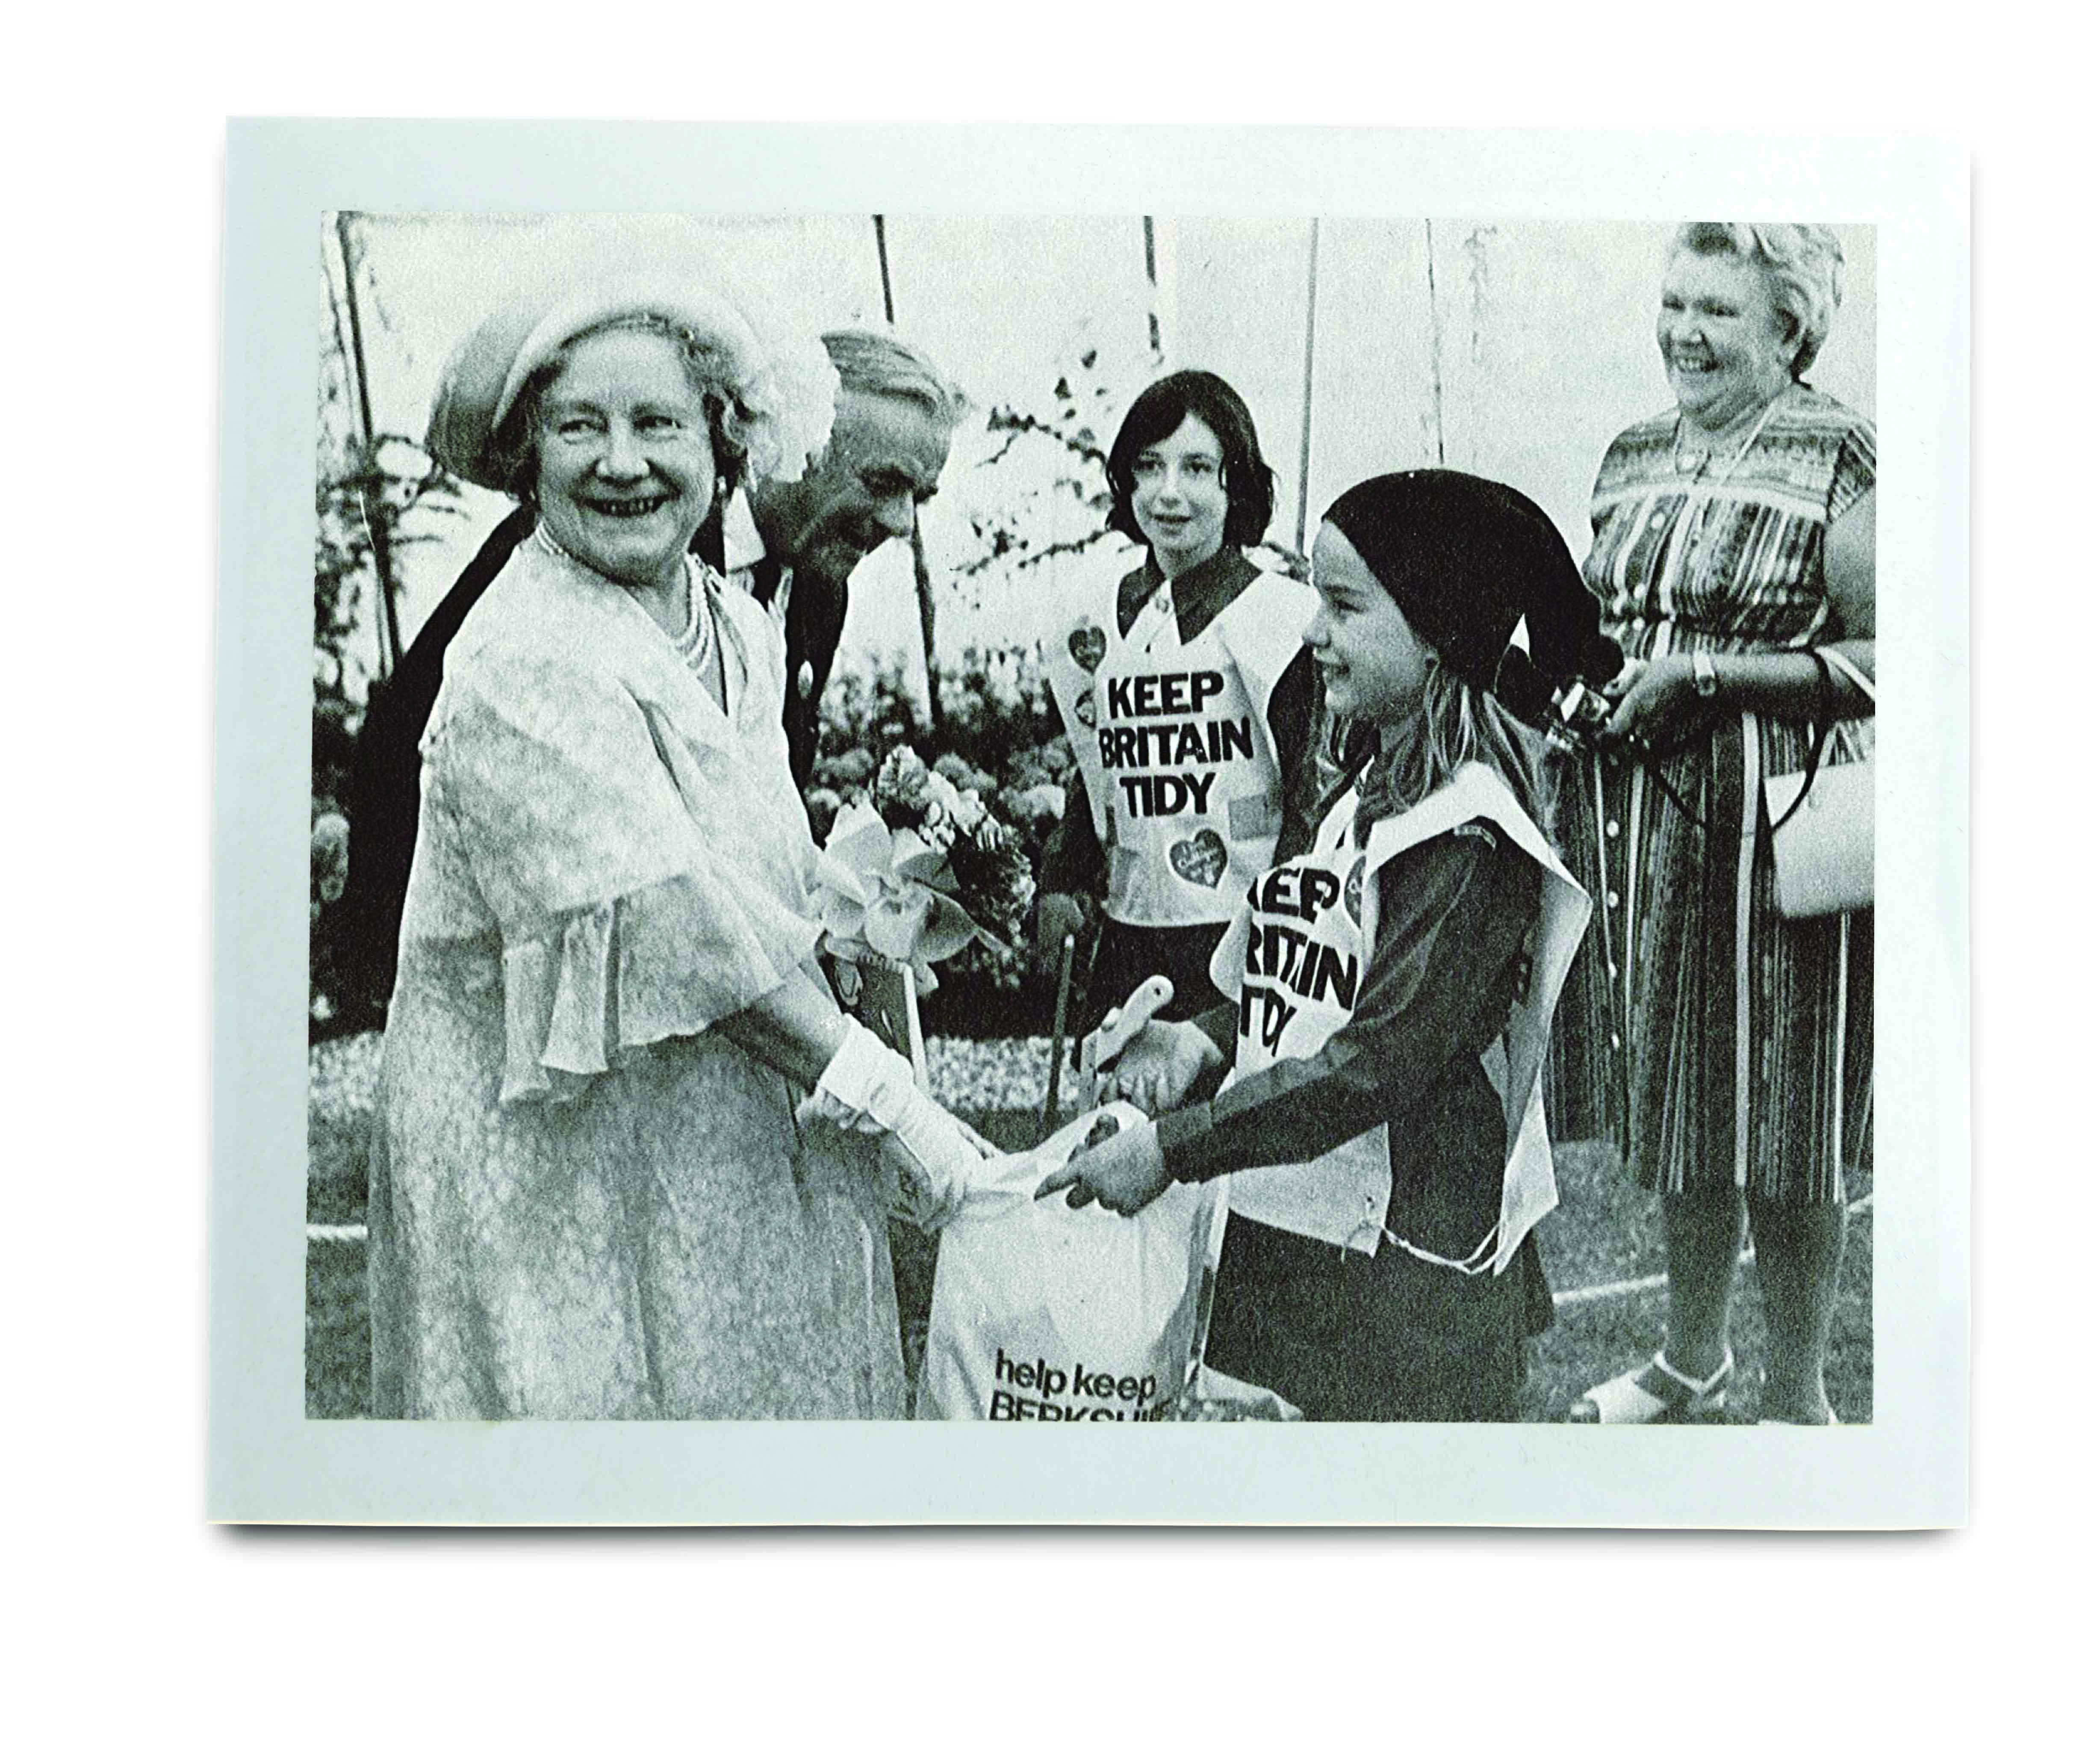 An image of the Queen with three Keep Britain Tidy volunteers